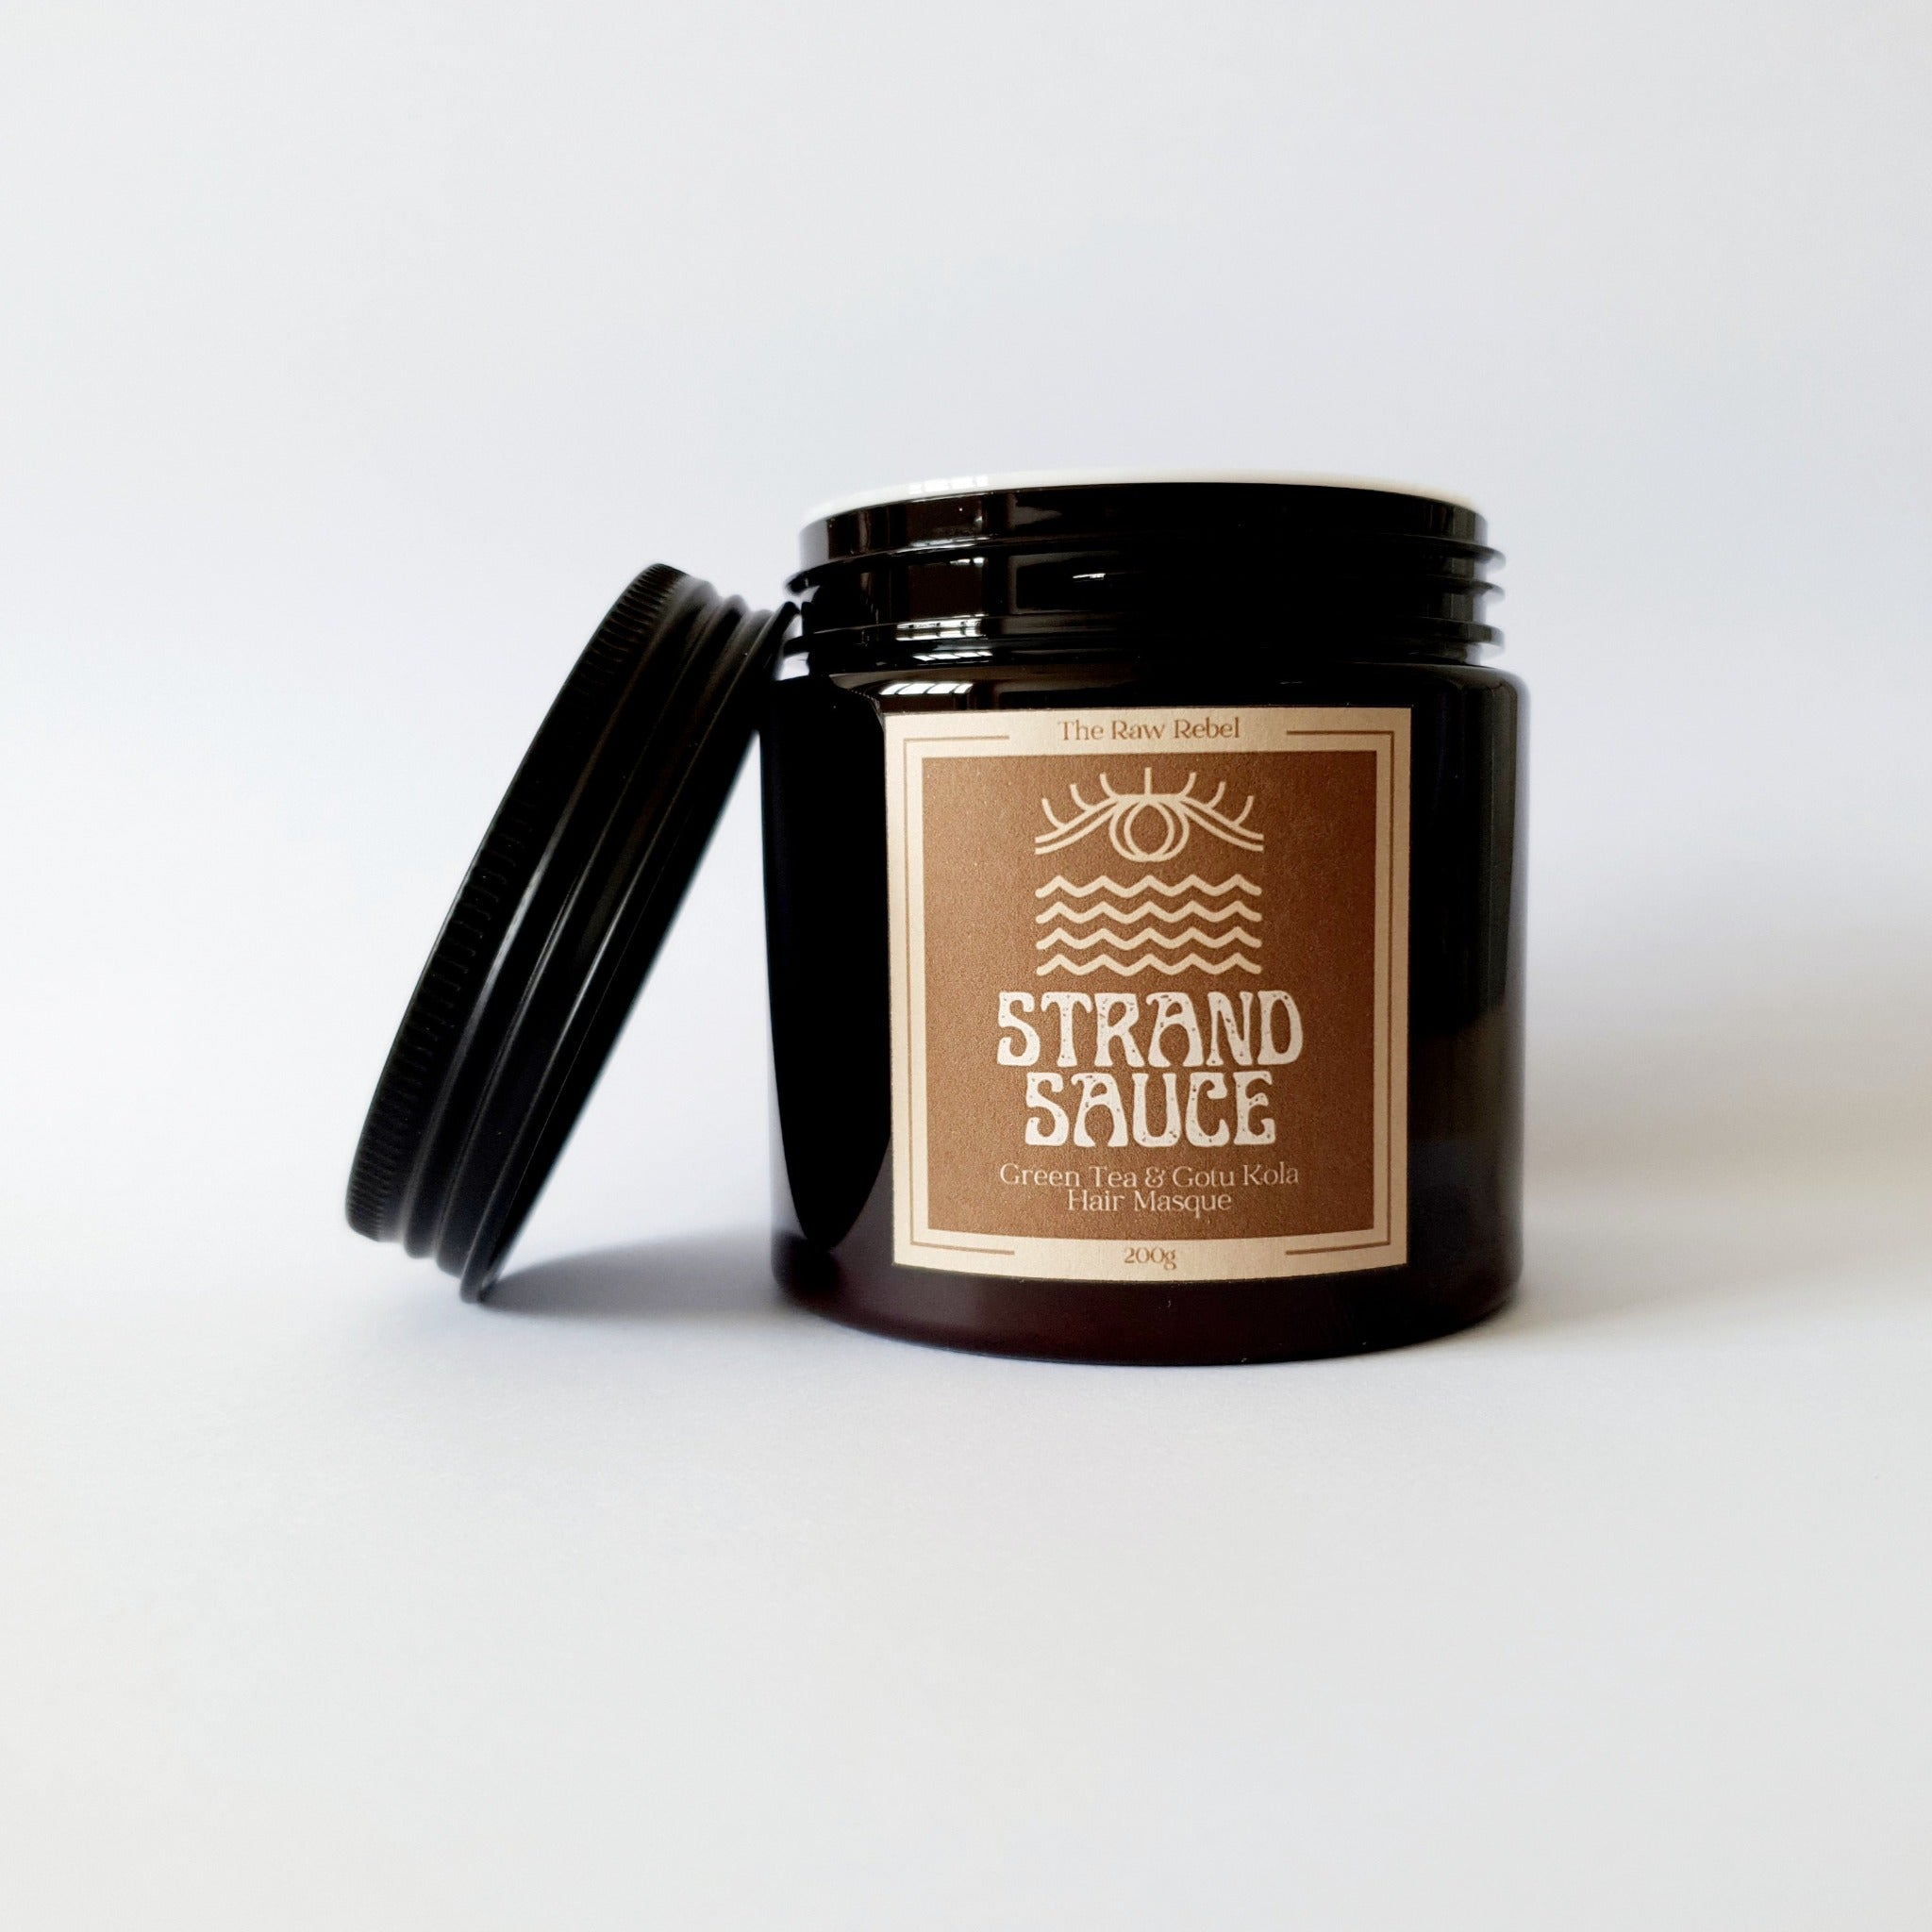 Strand Sauce — Hair Masque